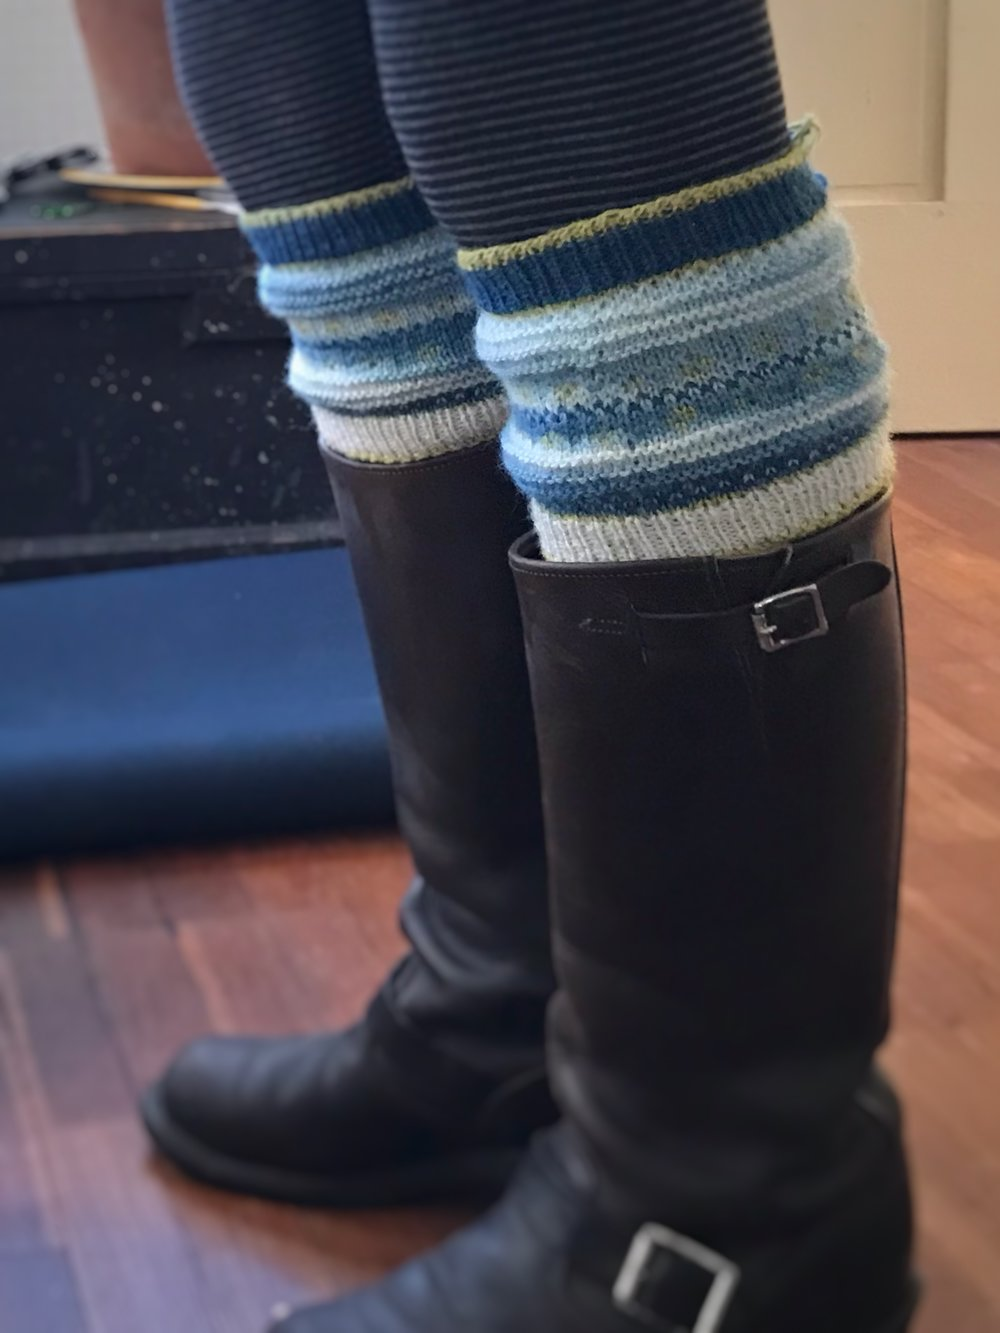 Toppers for tall boots, in Sea mini skeins